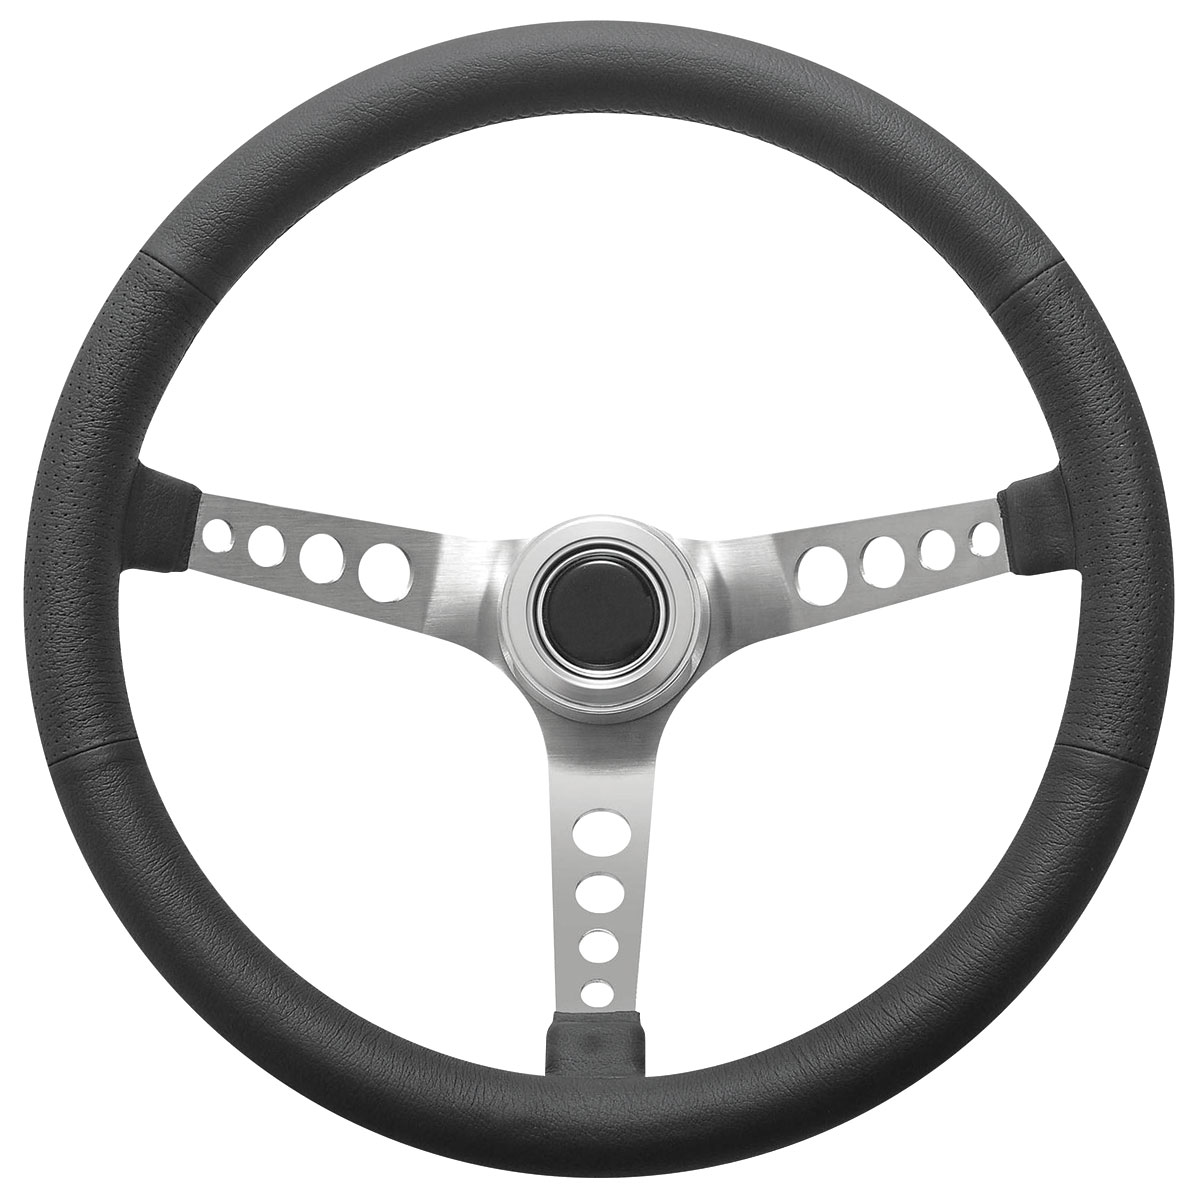 Photo of Steering Wheel Kit, Retro Wheel With Holes Hi-Rise Cap - Polished with polished center